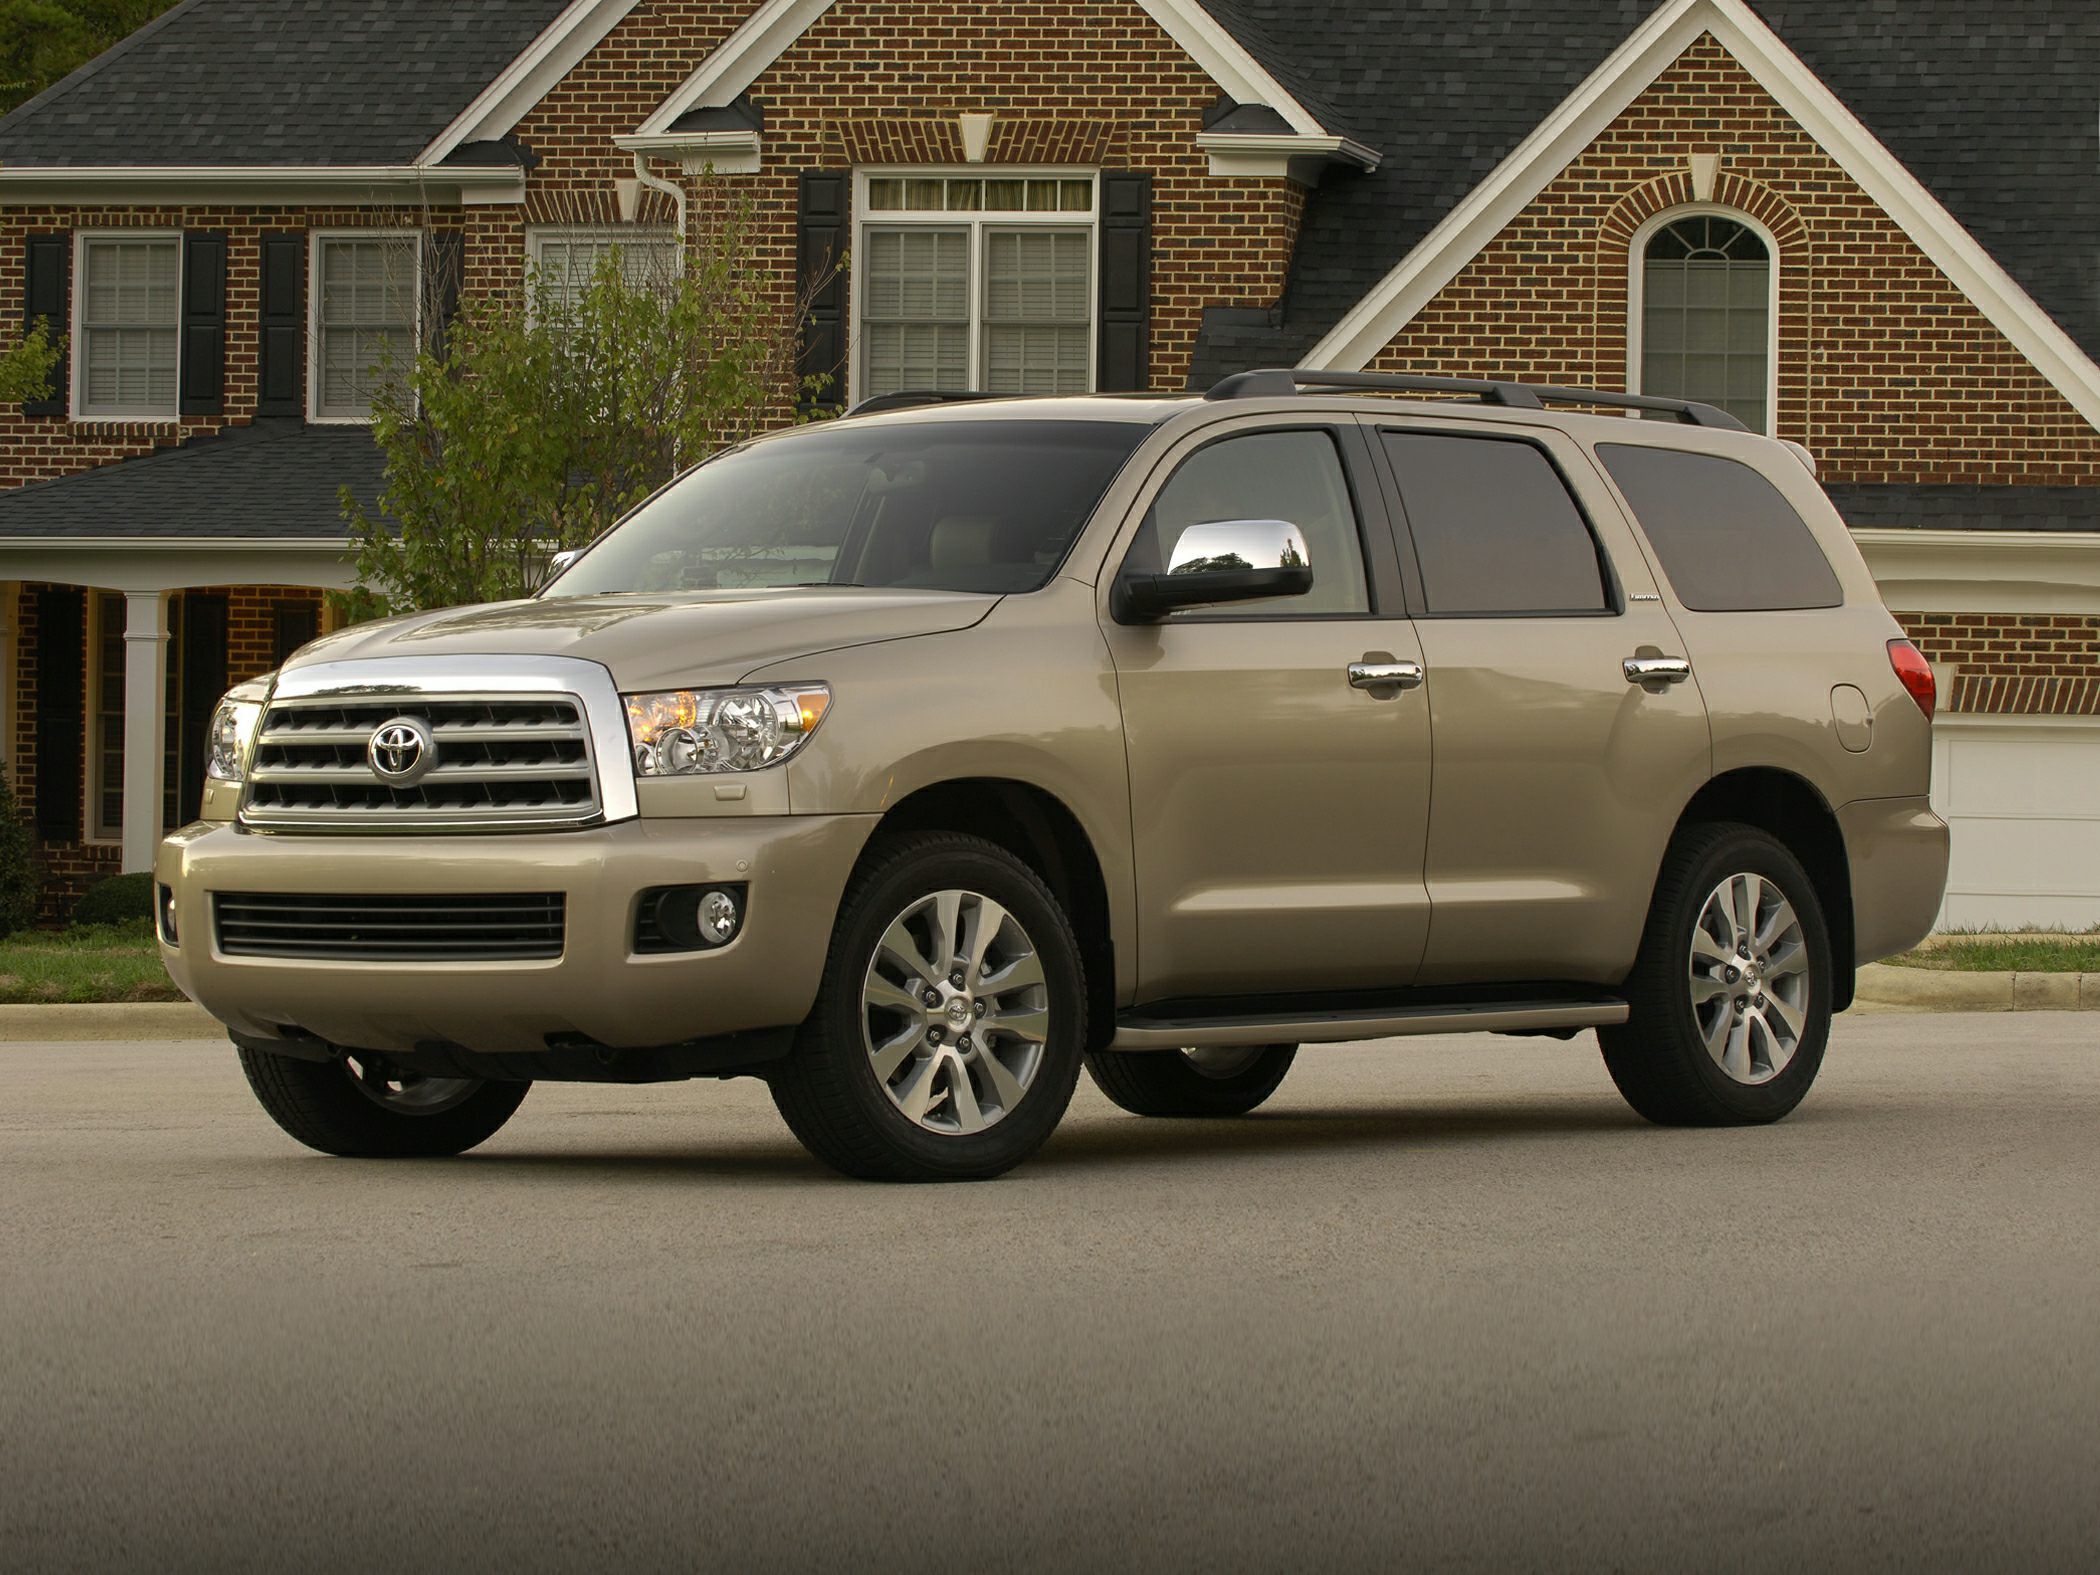 Best used suvs and used pickups for sale - Toyota-Sequoia